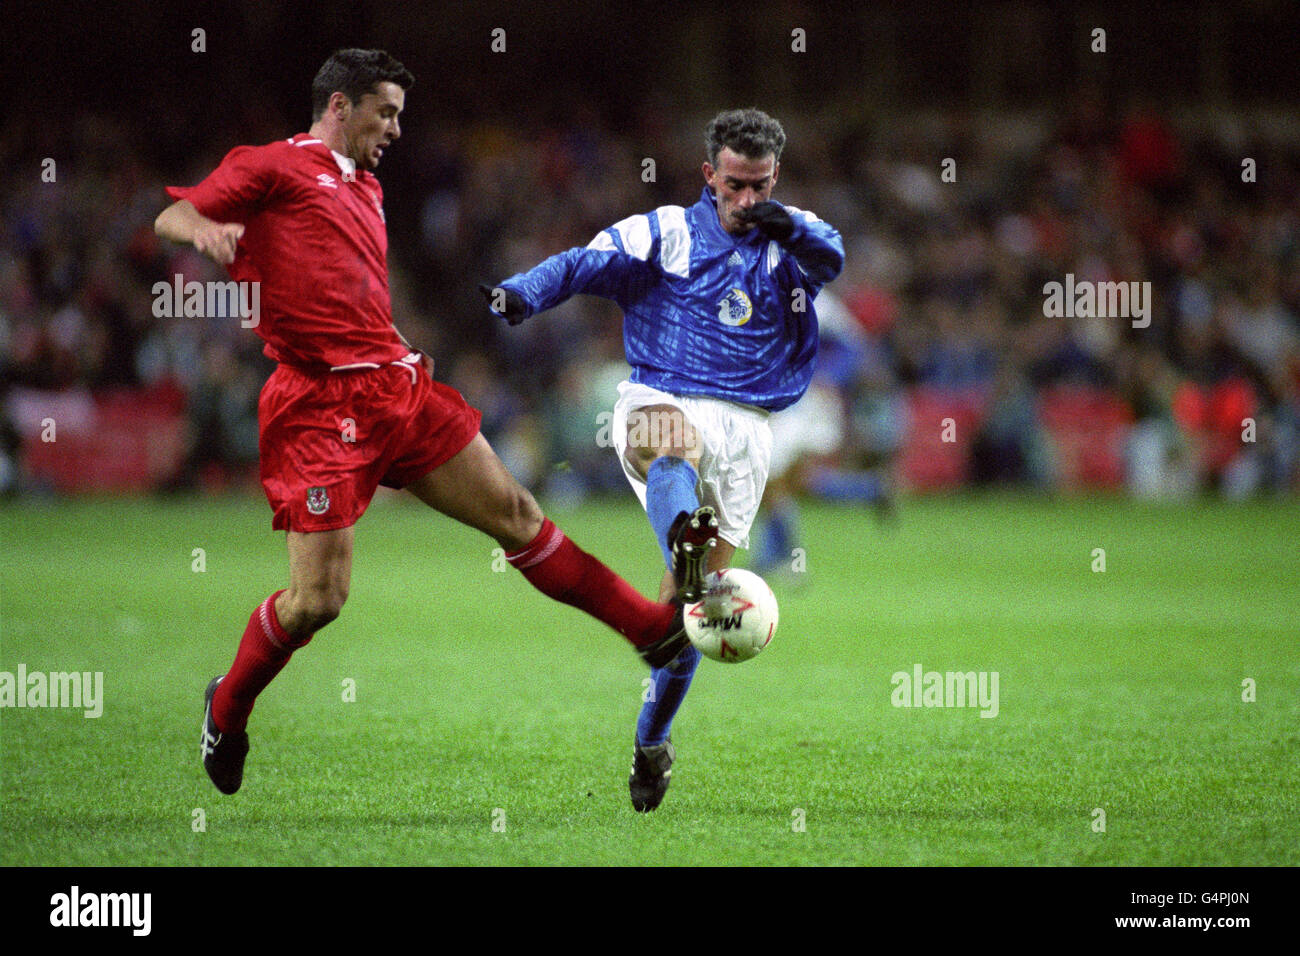 Soccer - World Cup Qualifier - Wales v Cyprus - Stock Image